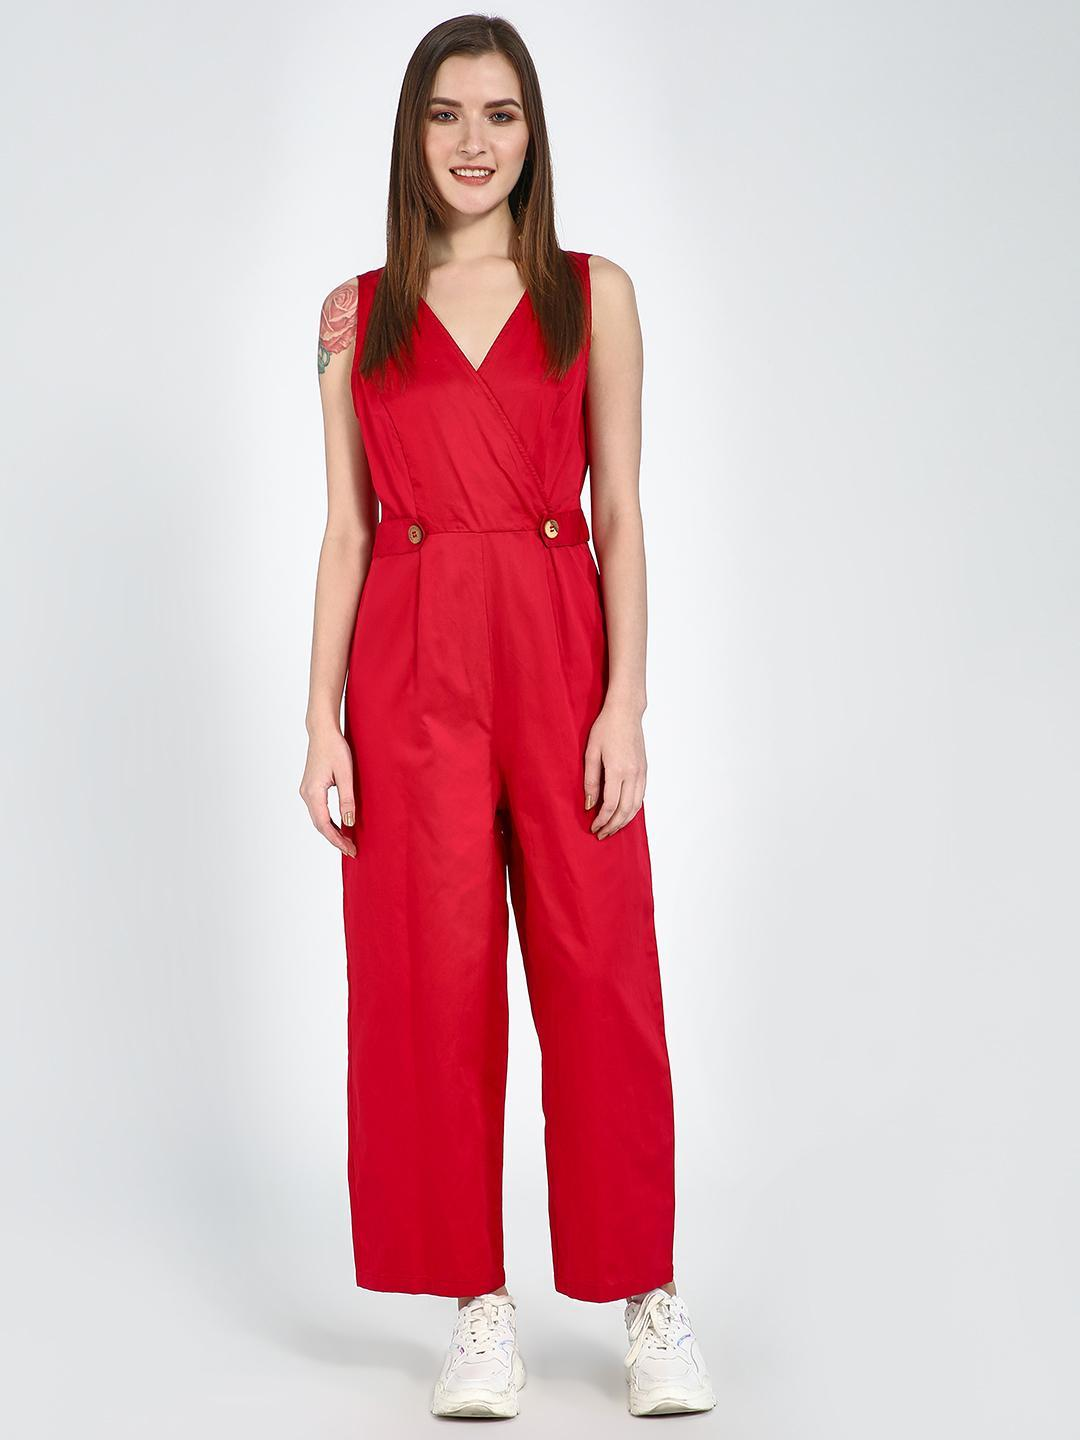 Femella Red Red Cotton Sleeveless Wrap Jumpsuit 1